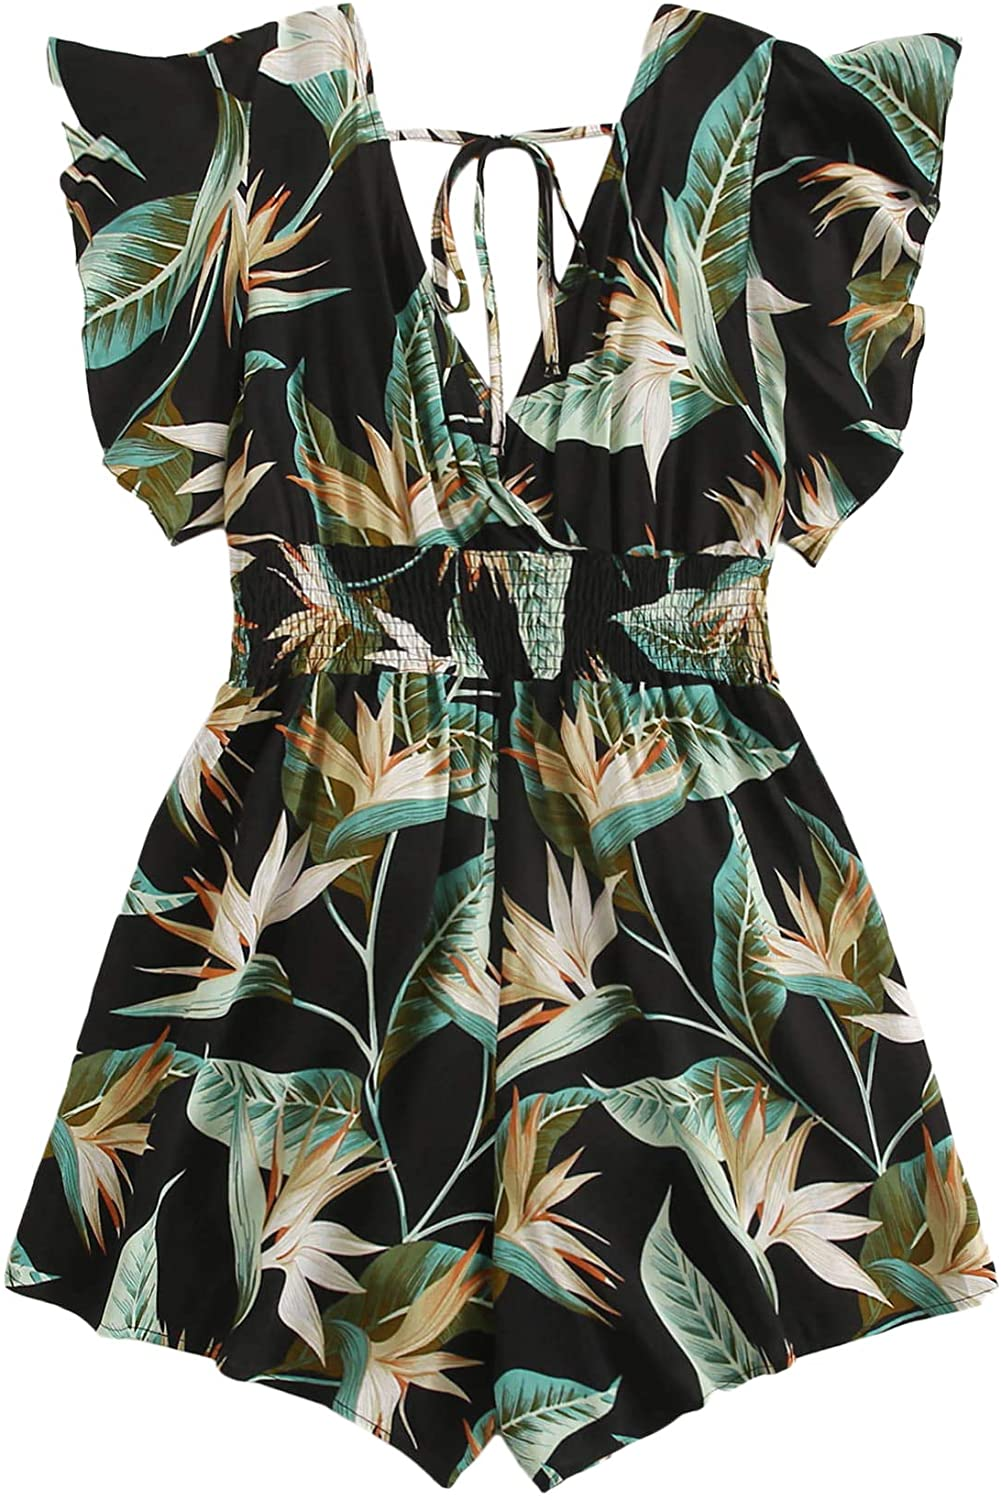 MakeMeChic Women's Plus Size Tropical Super popular specialty store Ruff Belted Back Tie NEW before selling ☆ Print